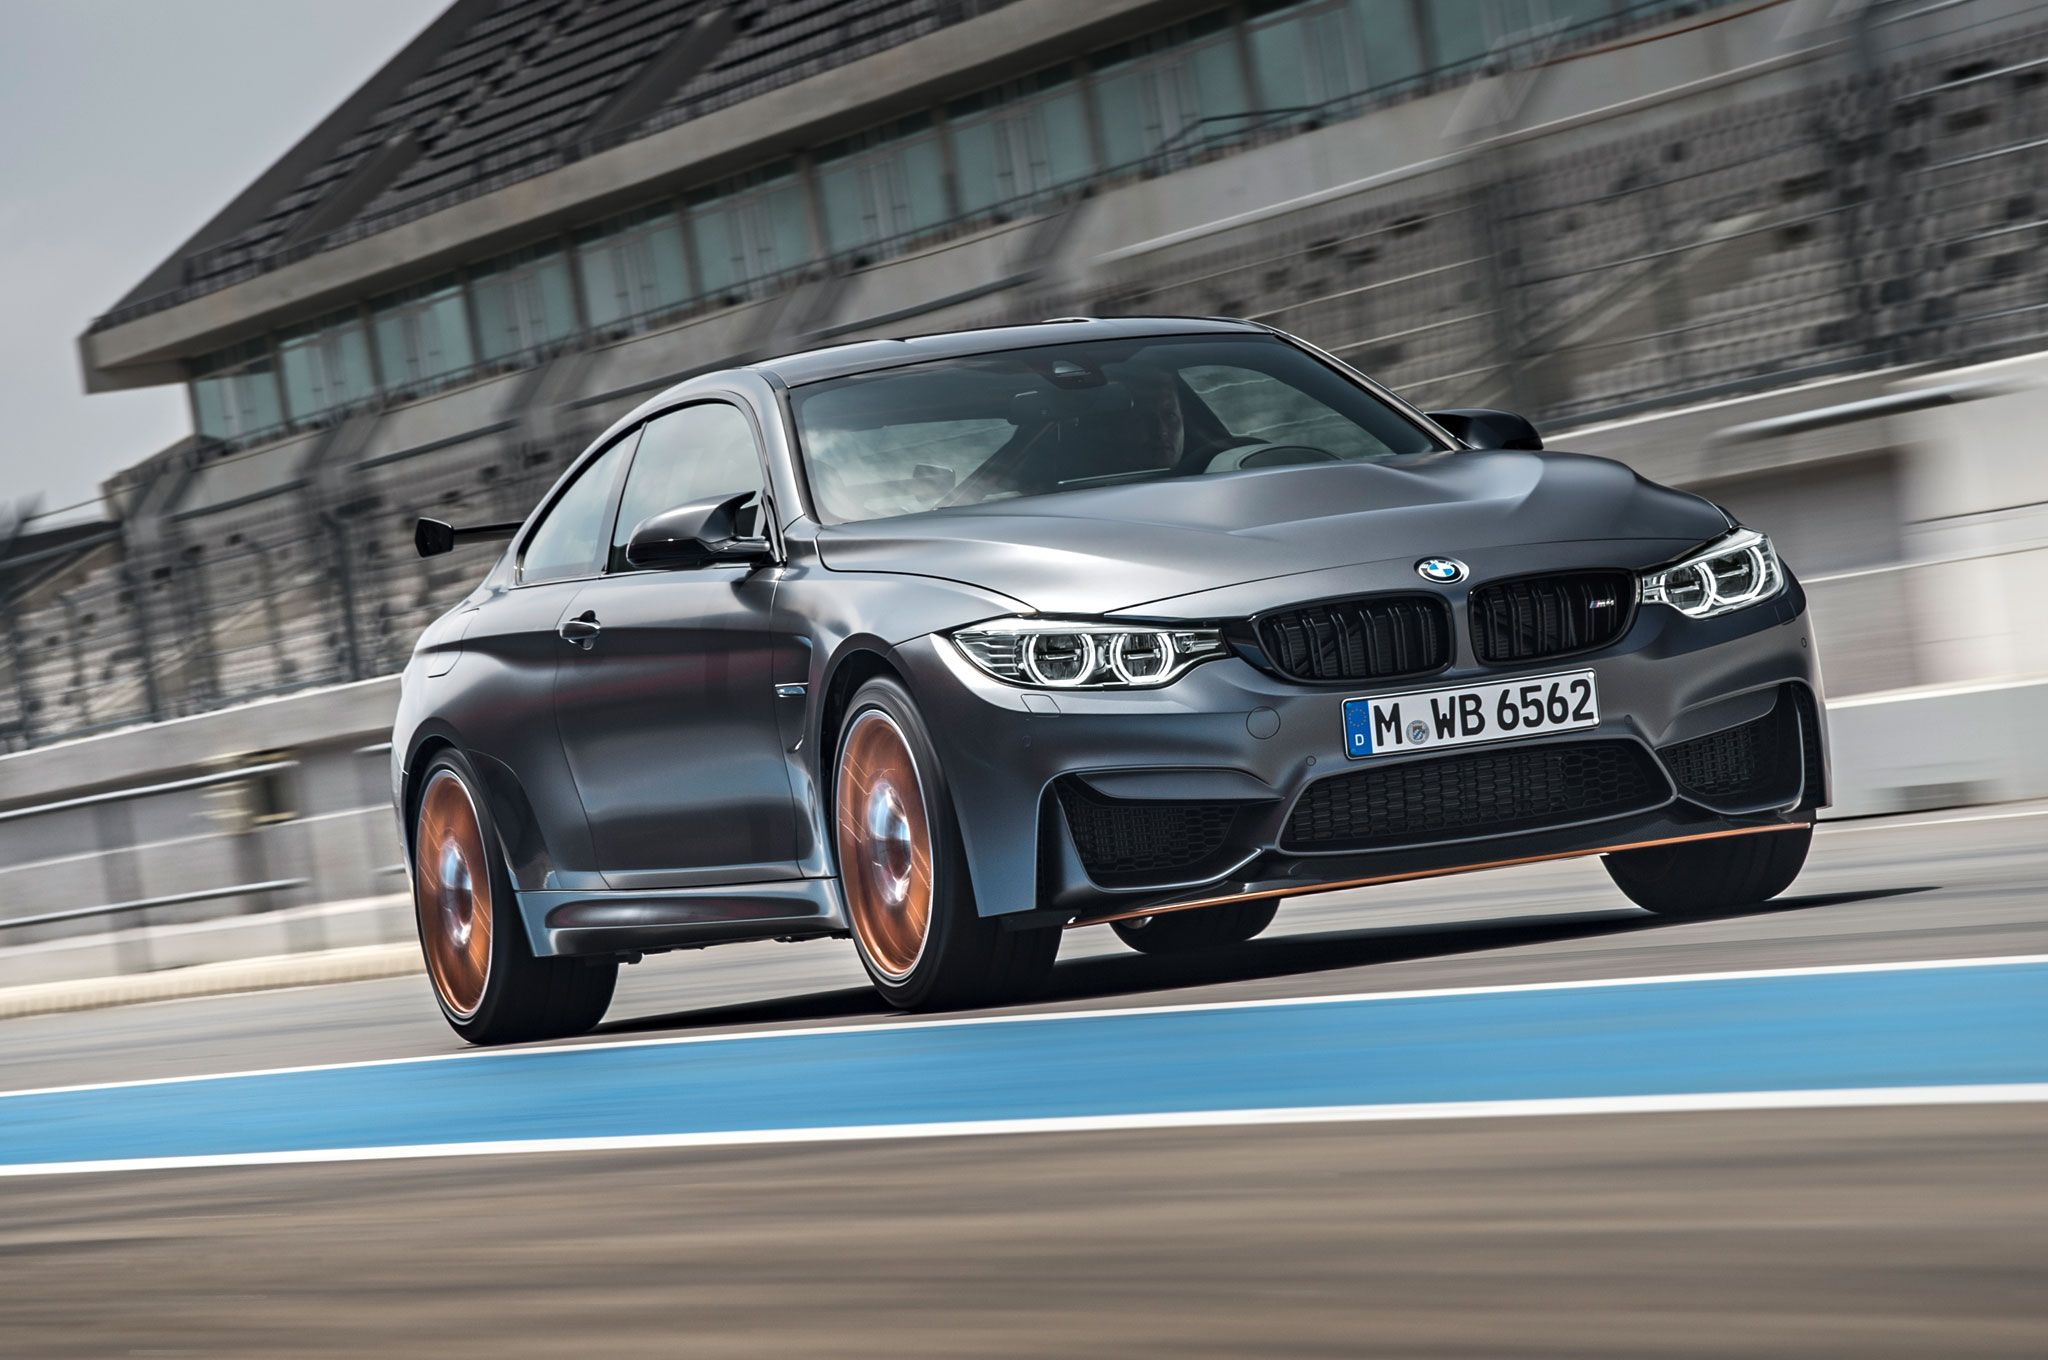 19 A 2019 BMW M4 Gts Release